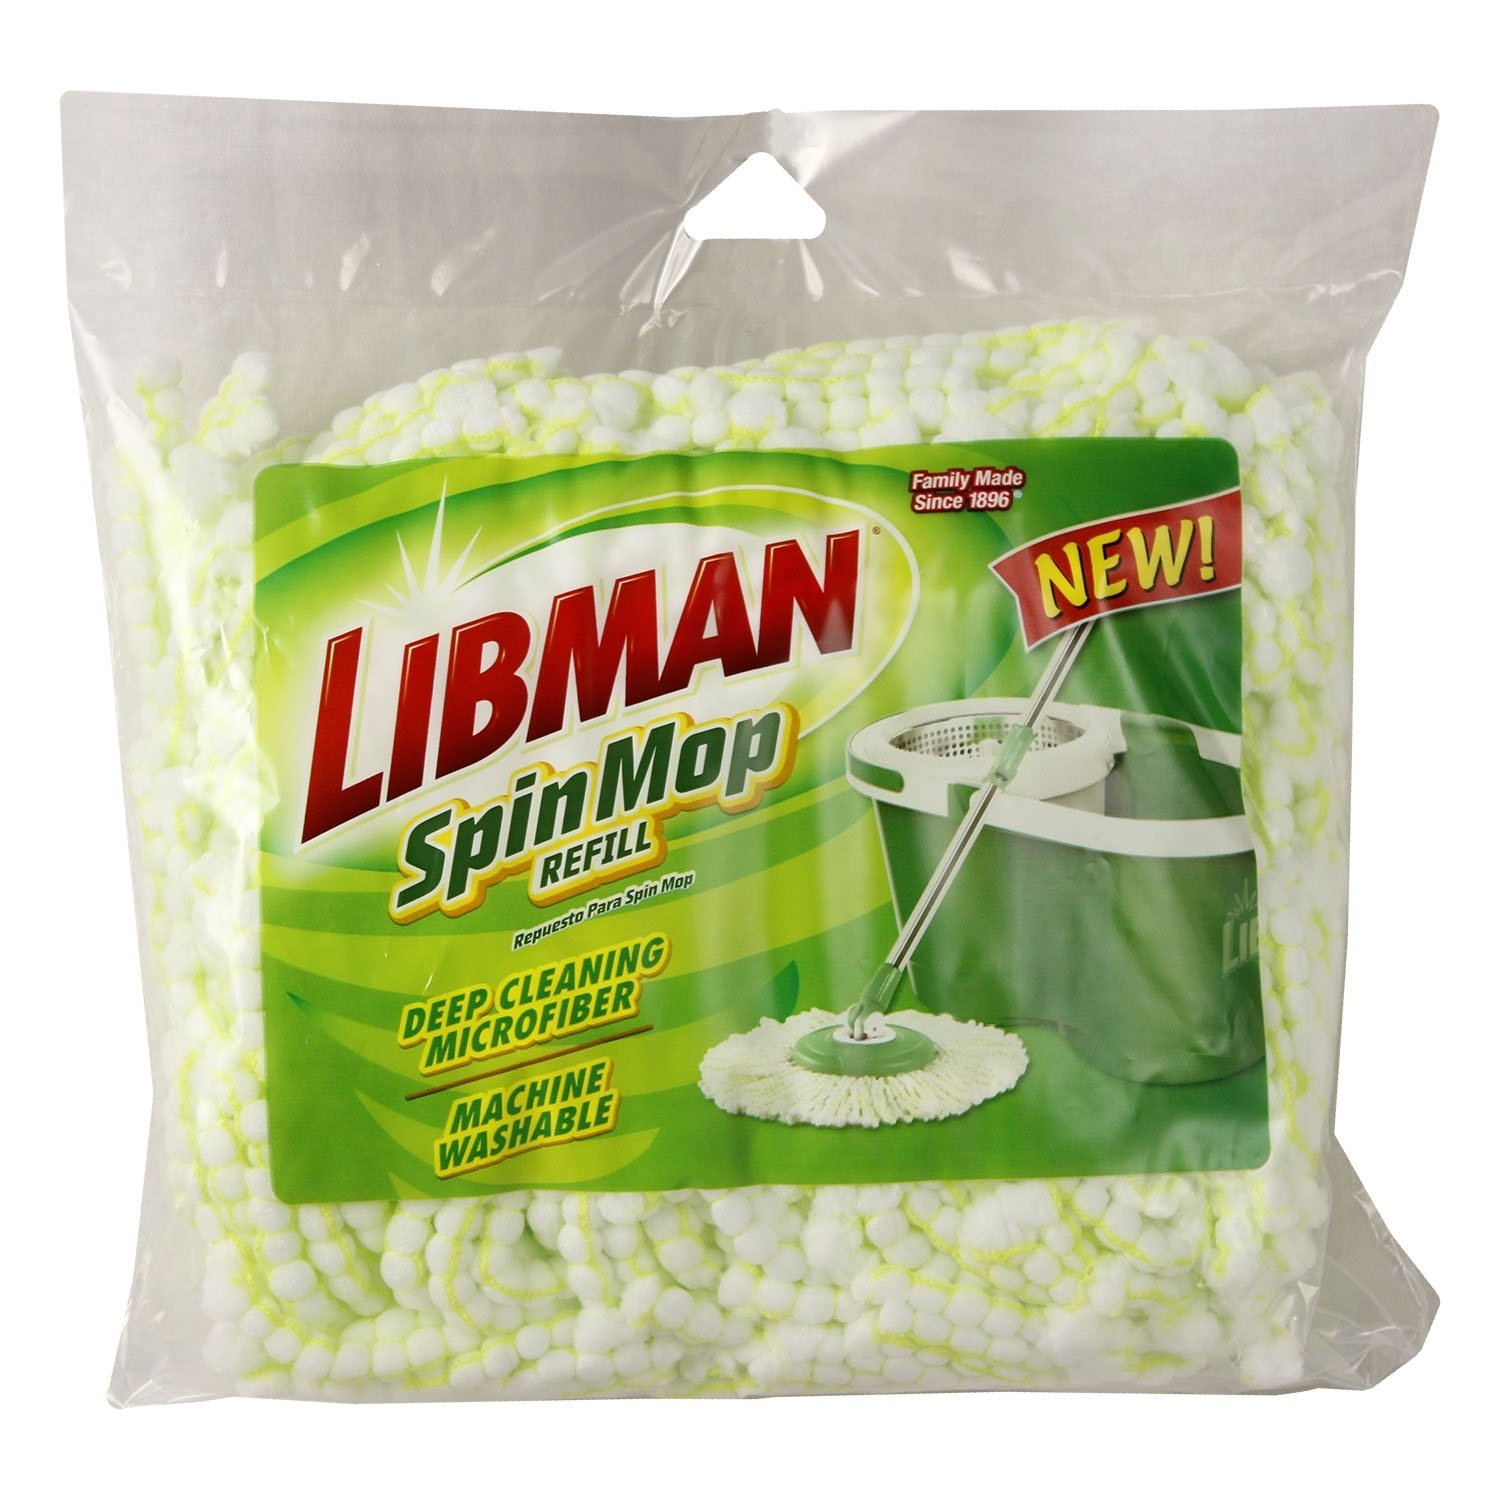 Libman 1164 Spin Mop and Bucket Refill 01164